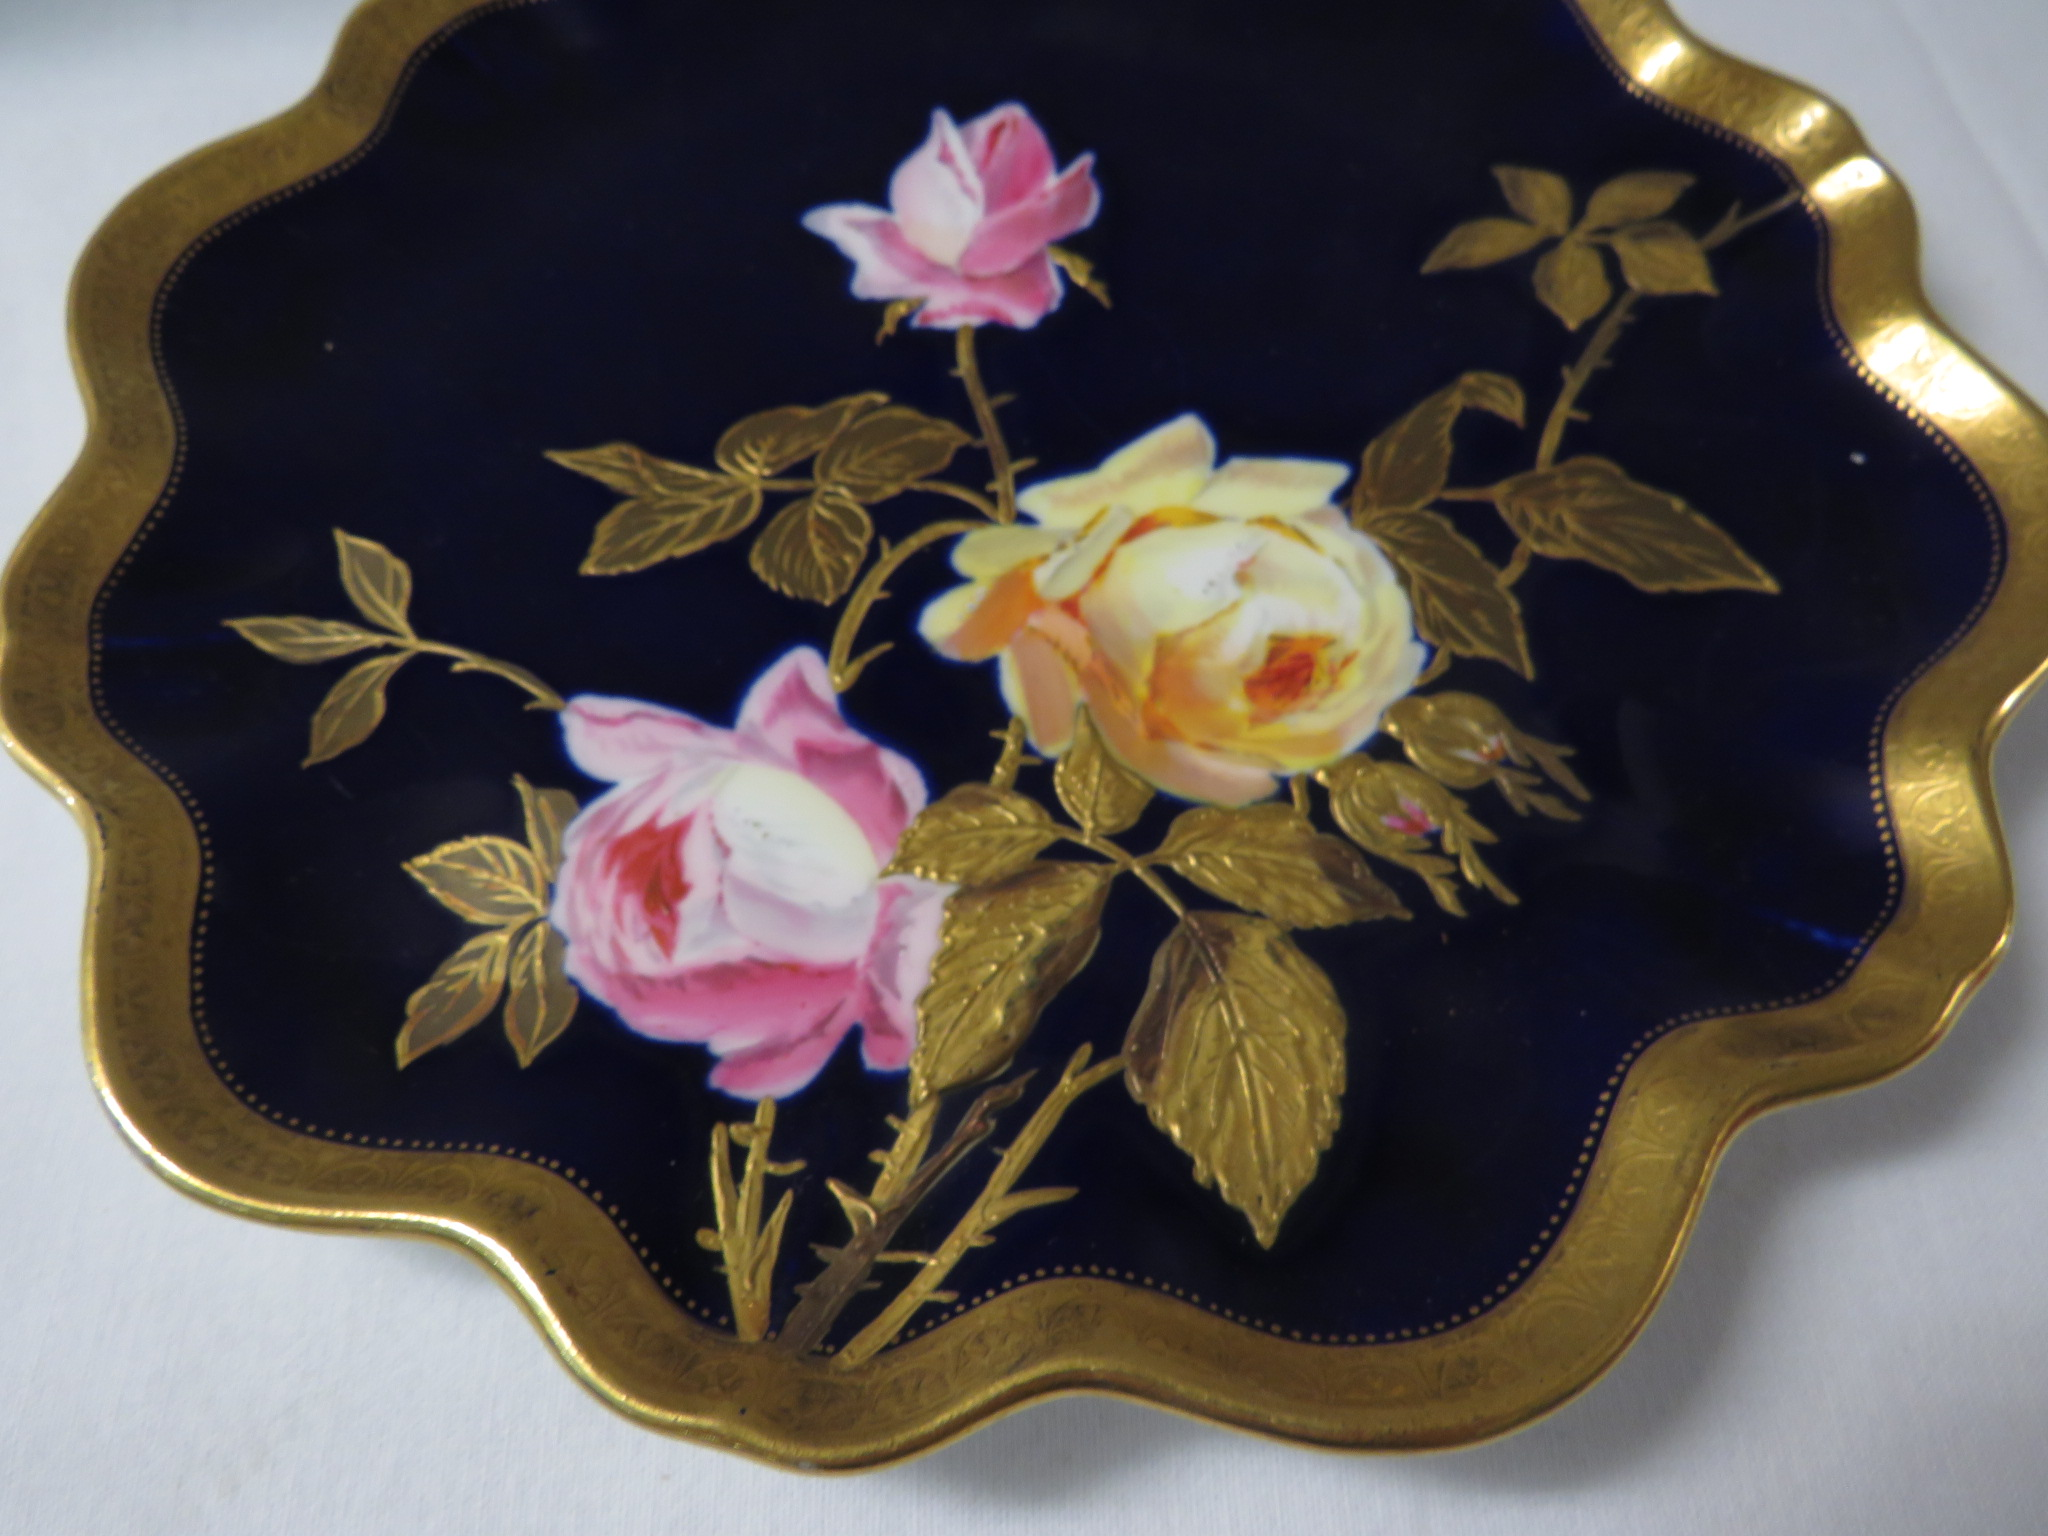 Lot 28 - A porcelain plate with wavy edge and gilt rim, cobalt blue ground and painted and gilded with pink